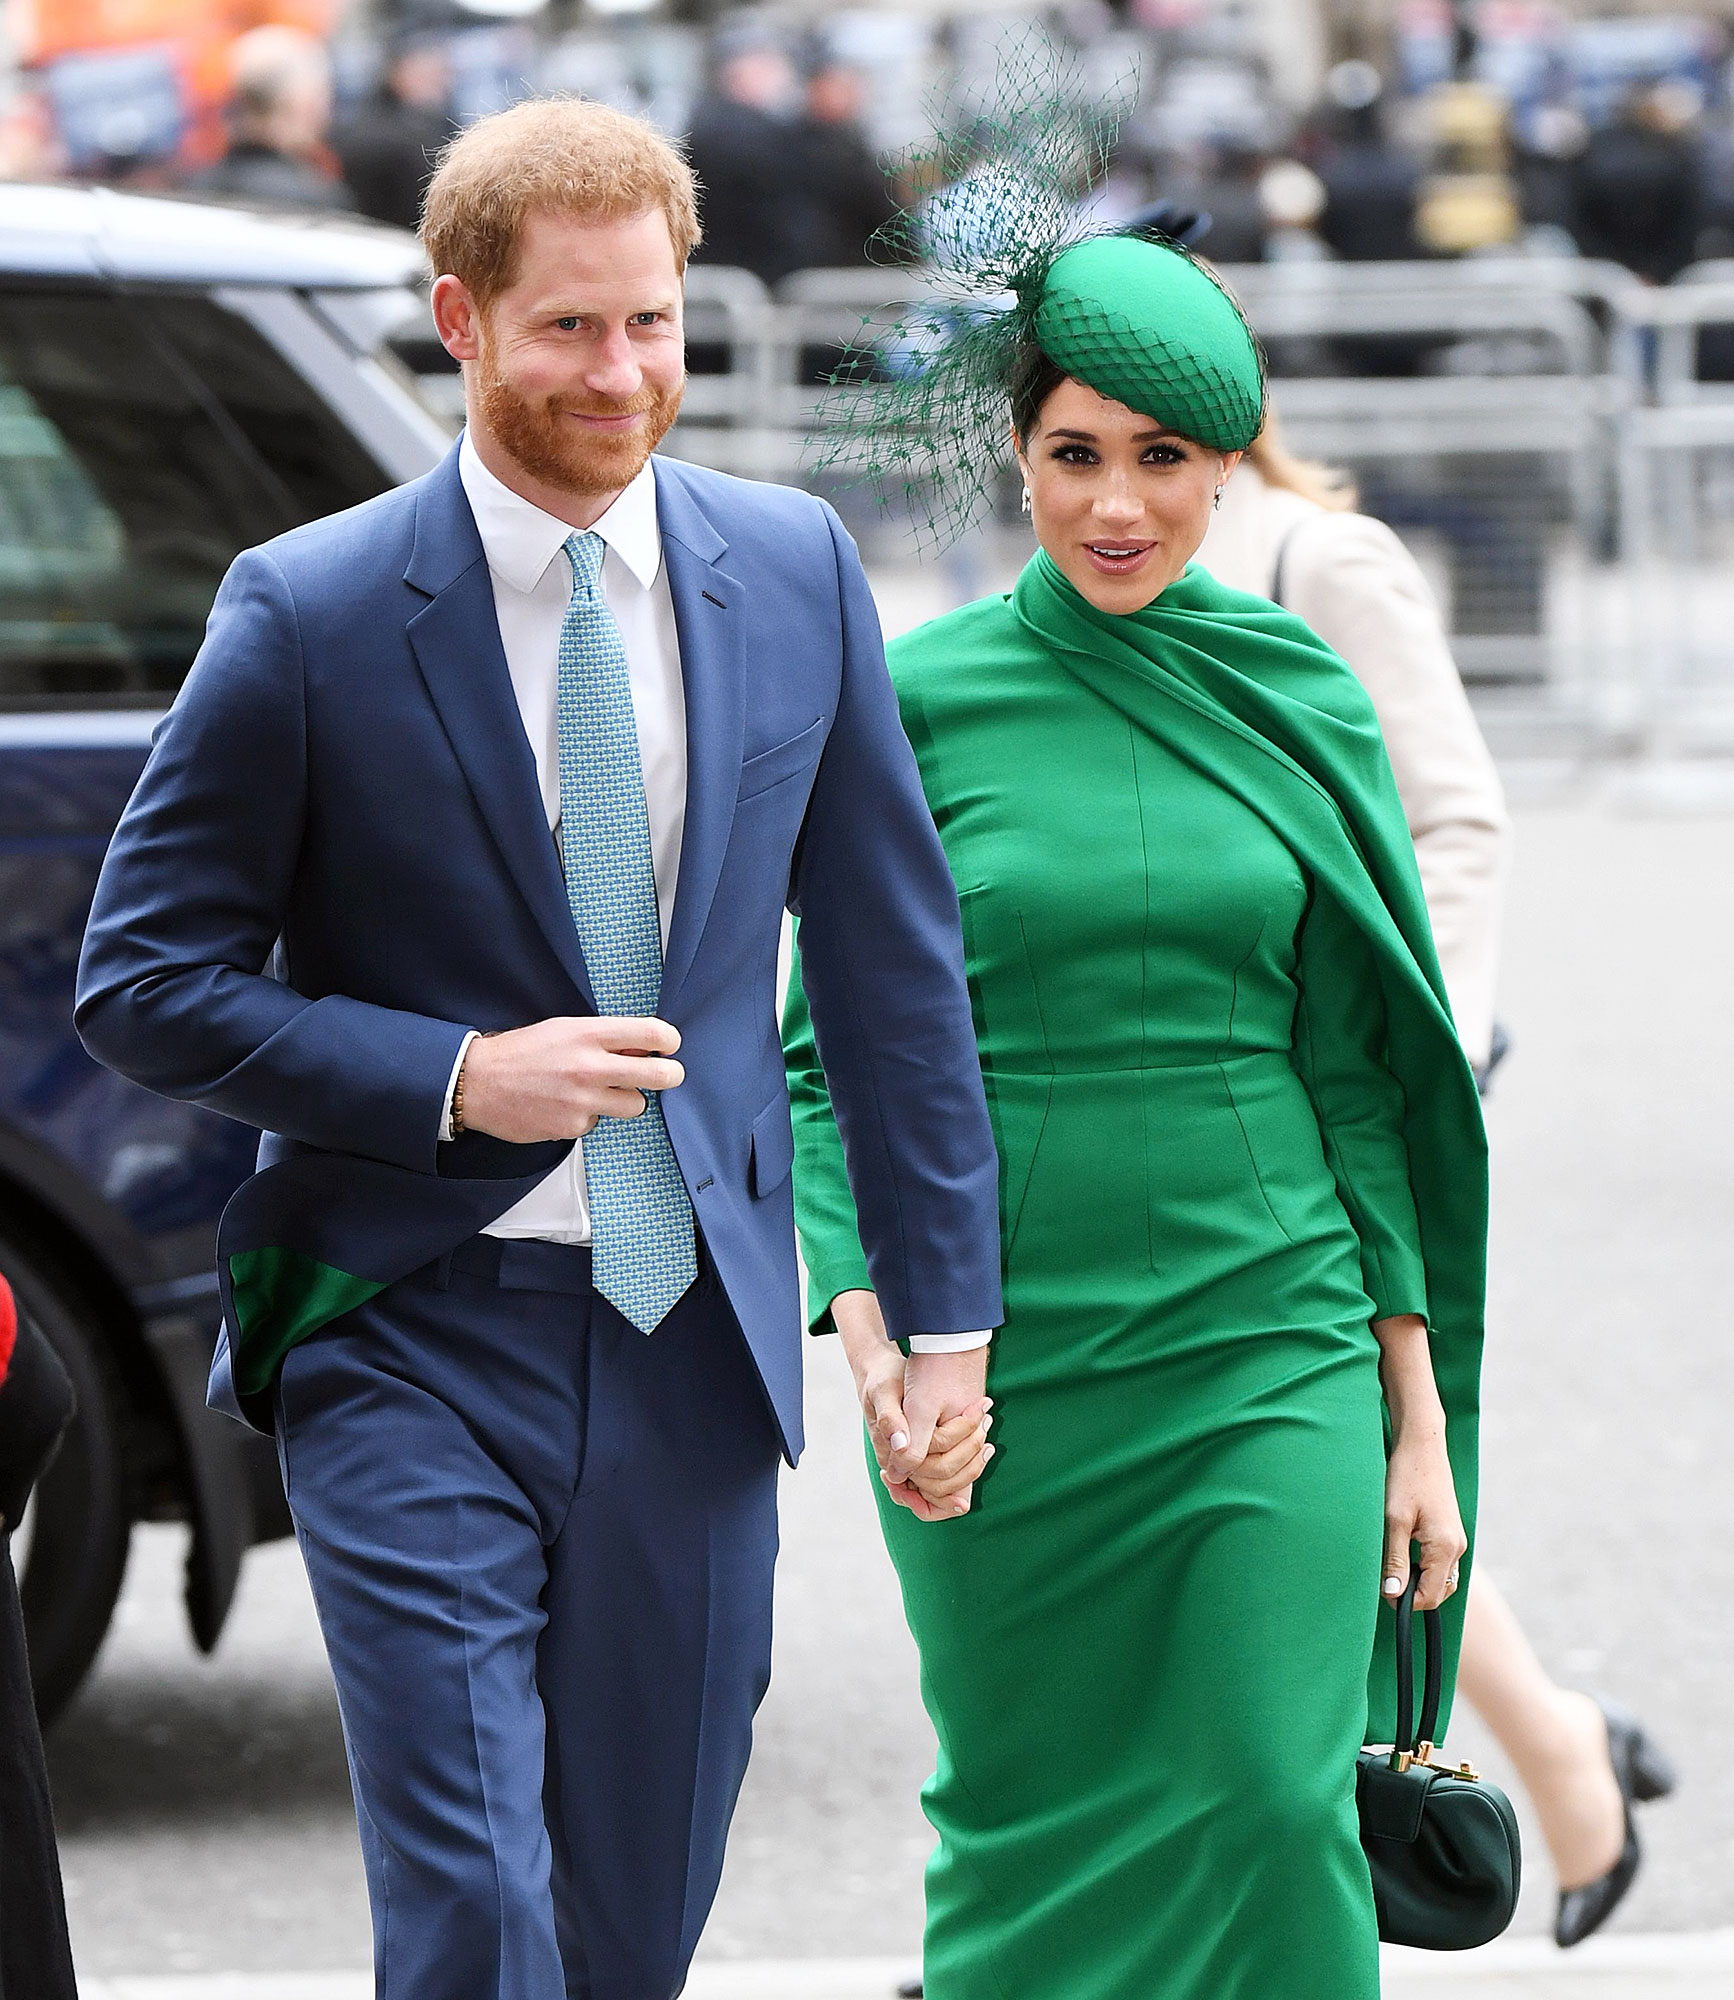 Prince Harry and Meghan Markle attend the Commonwealth Day Service Prince Philip Sees Prince Harry Royal Exit as a Dereliction of Duty